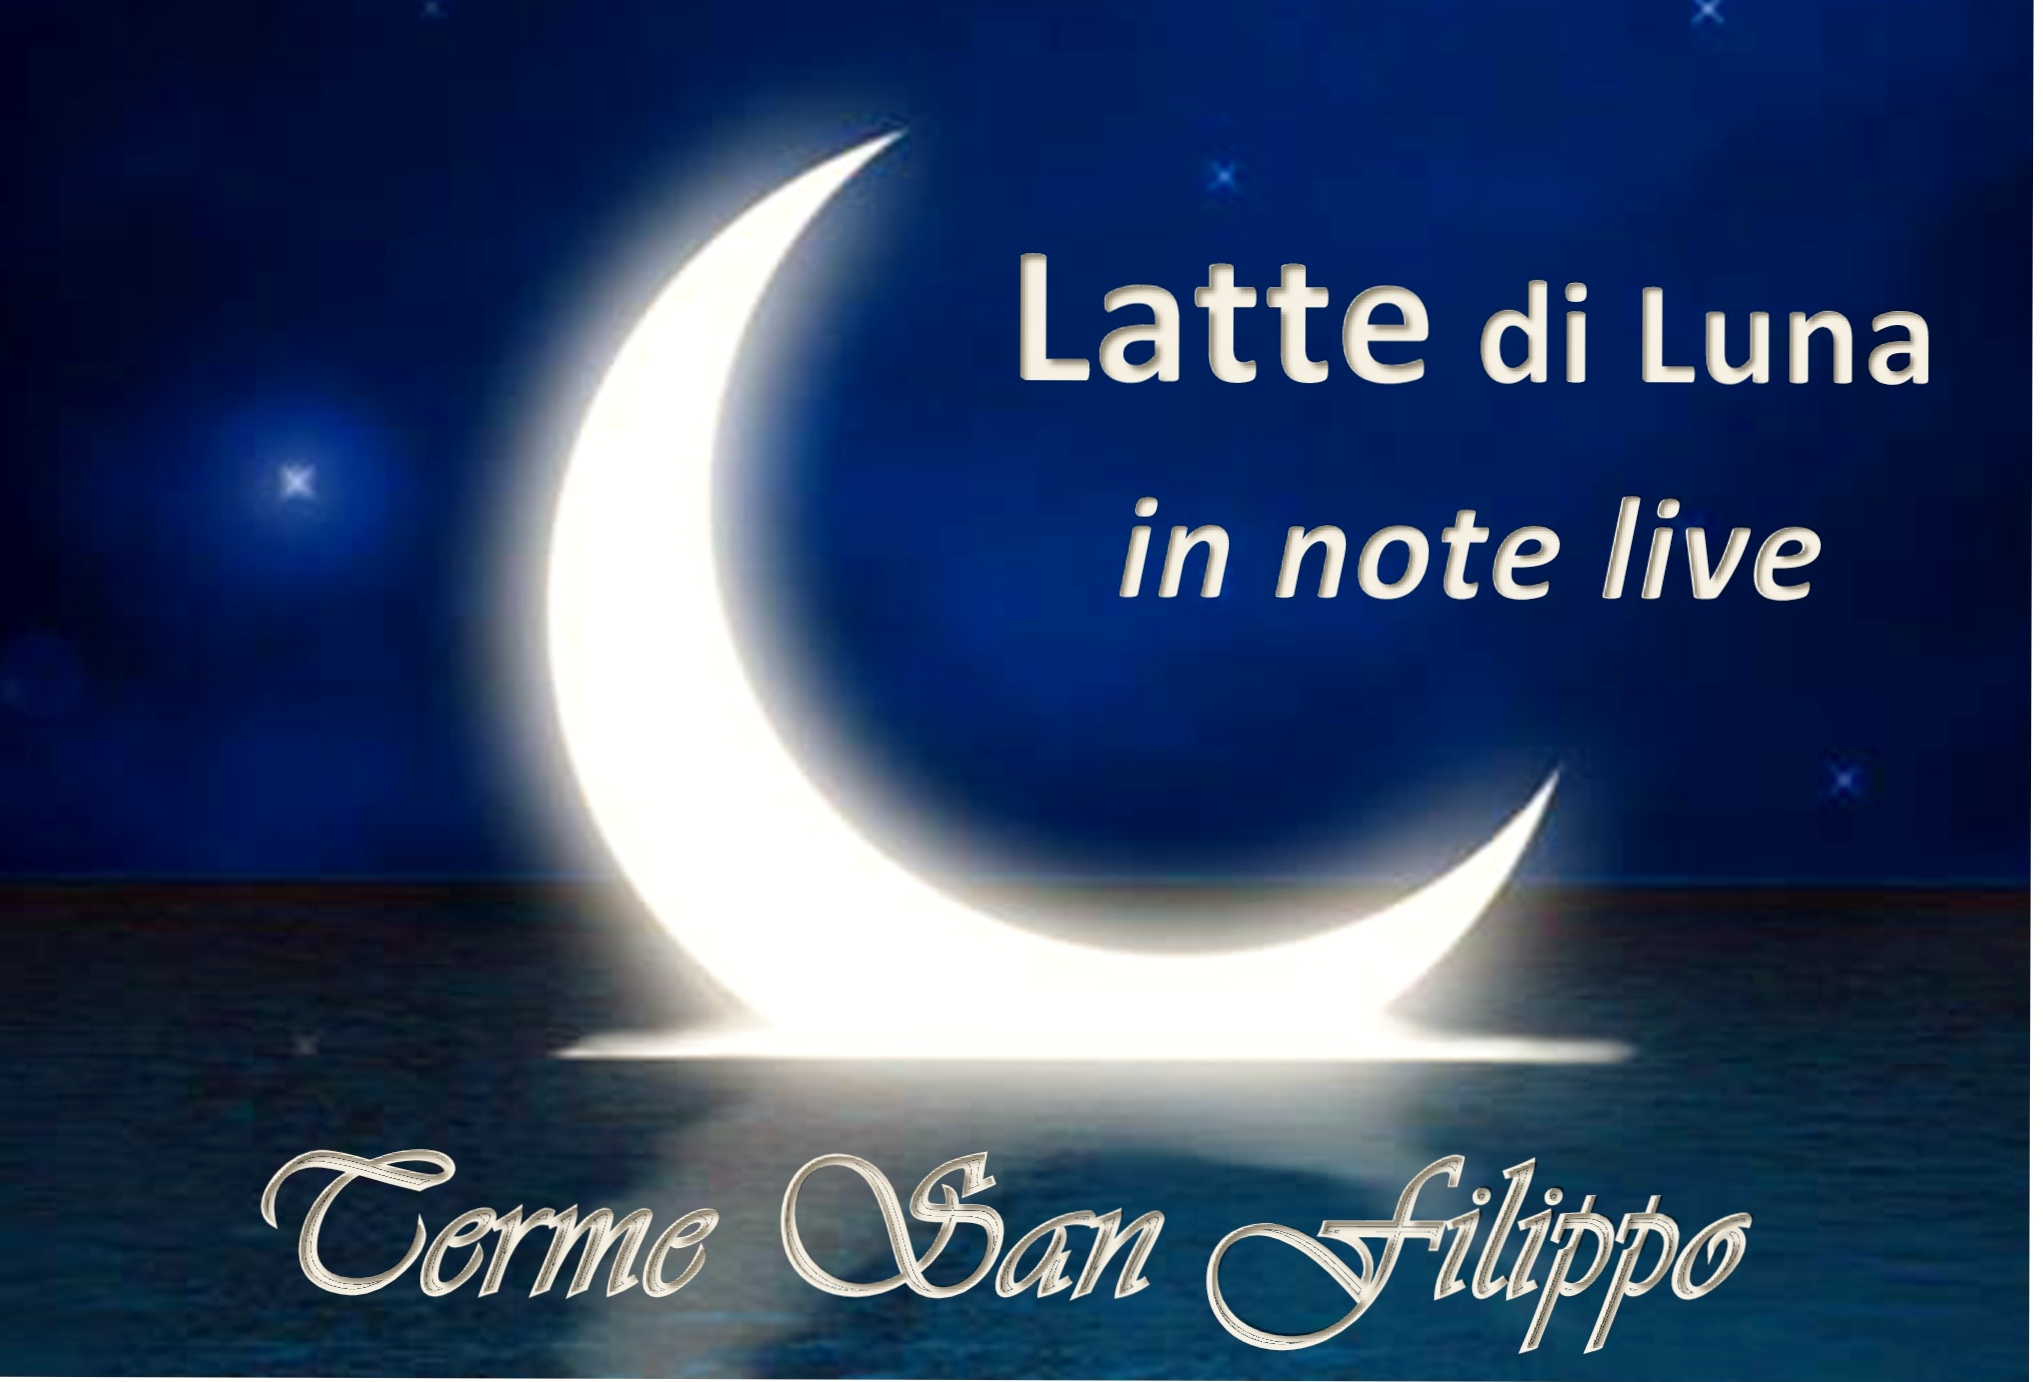 LATTE DI LUNA in note live